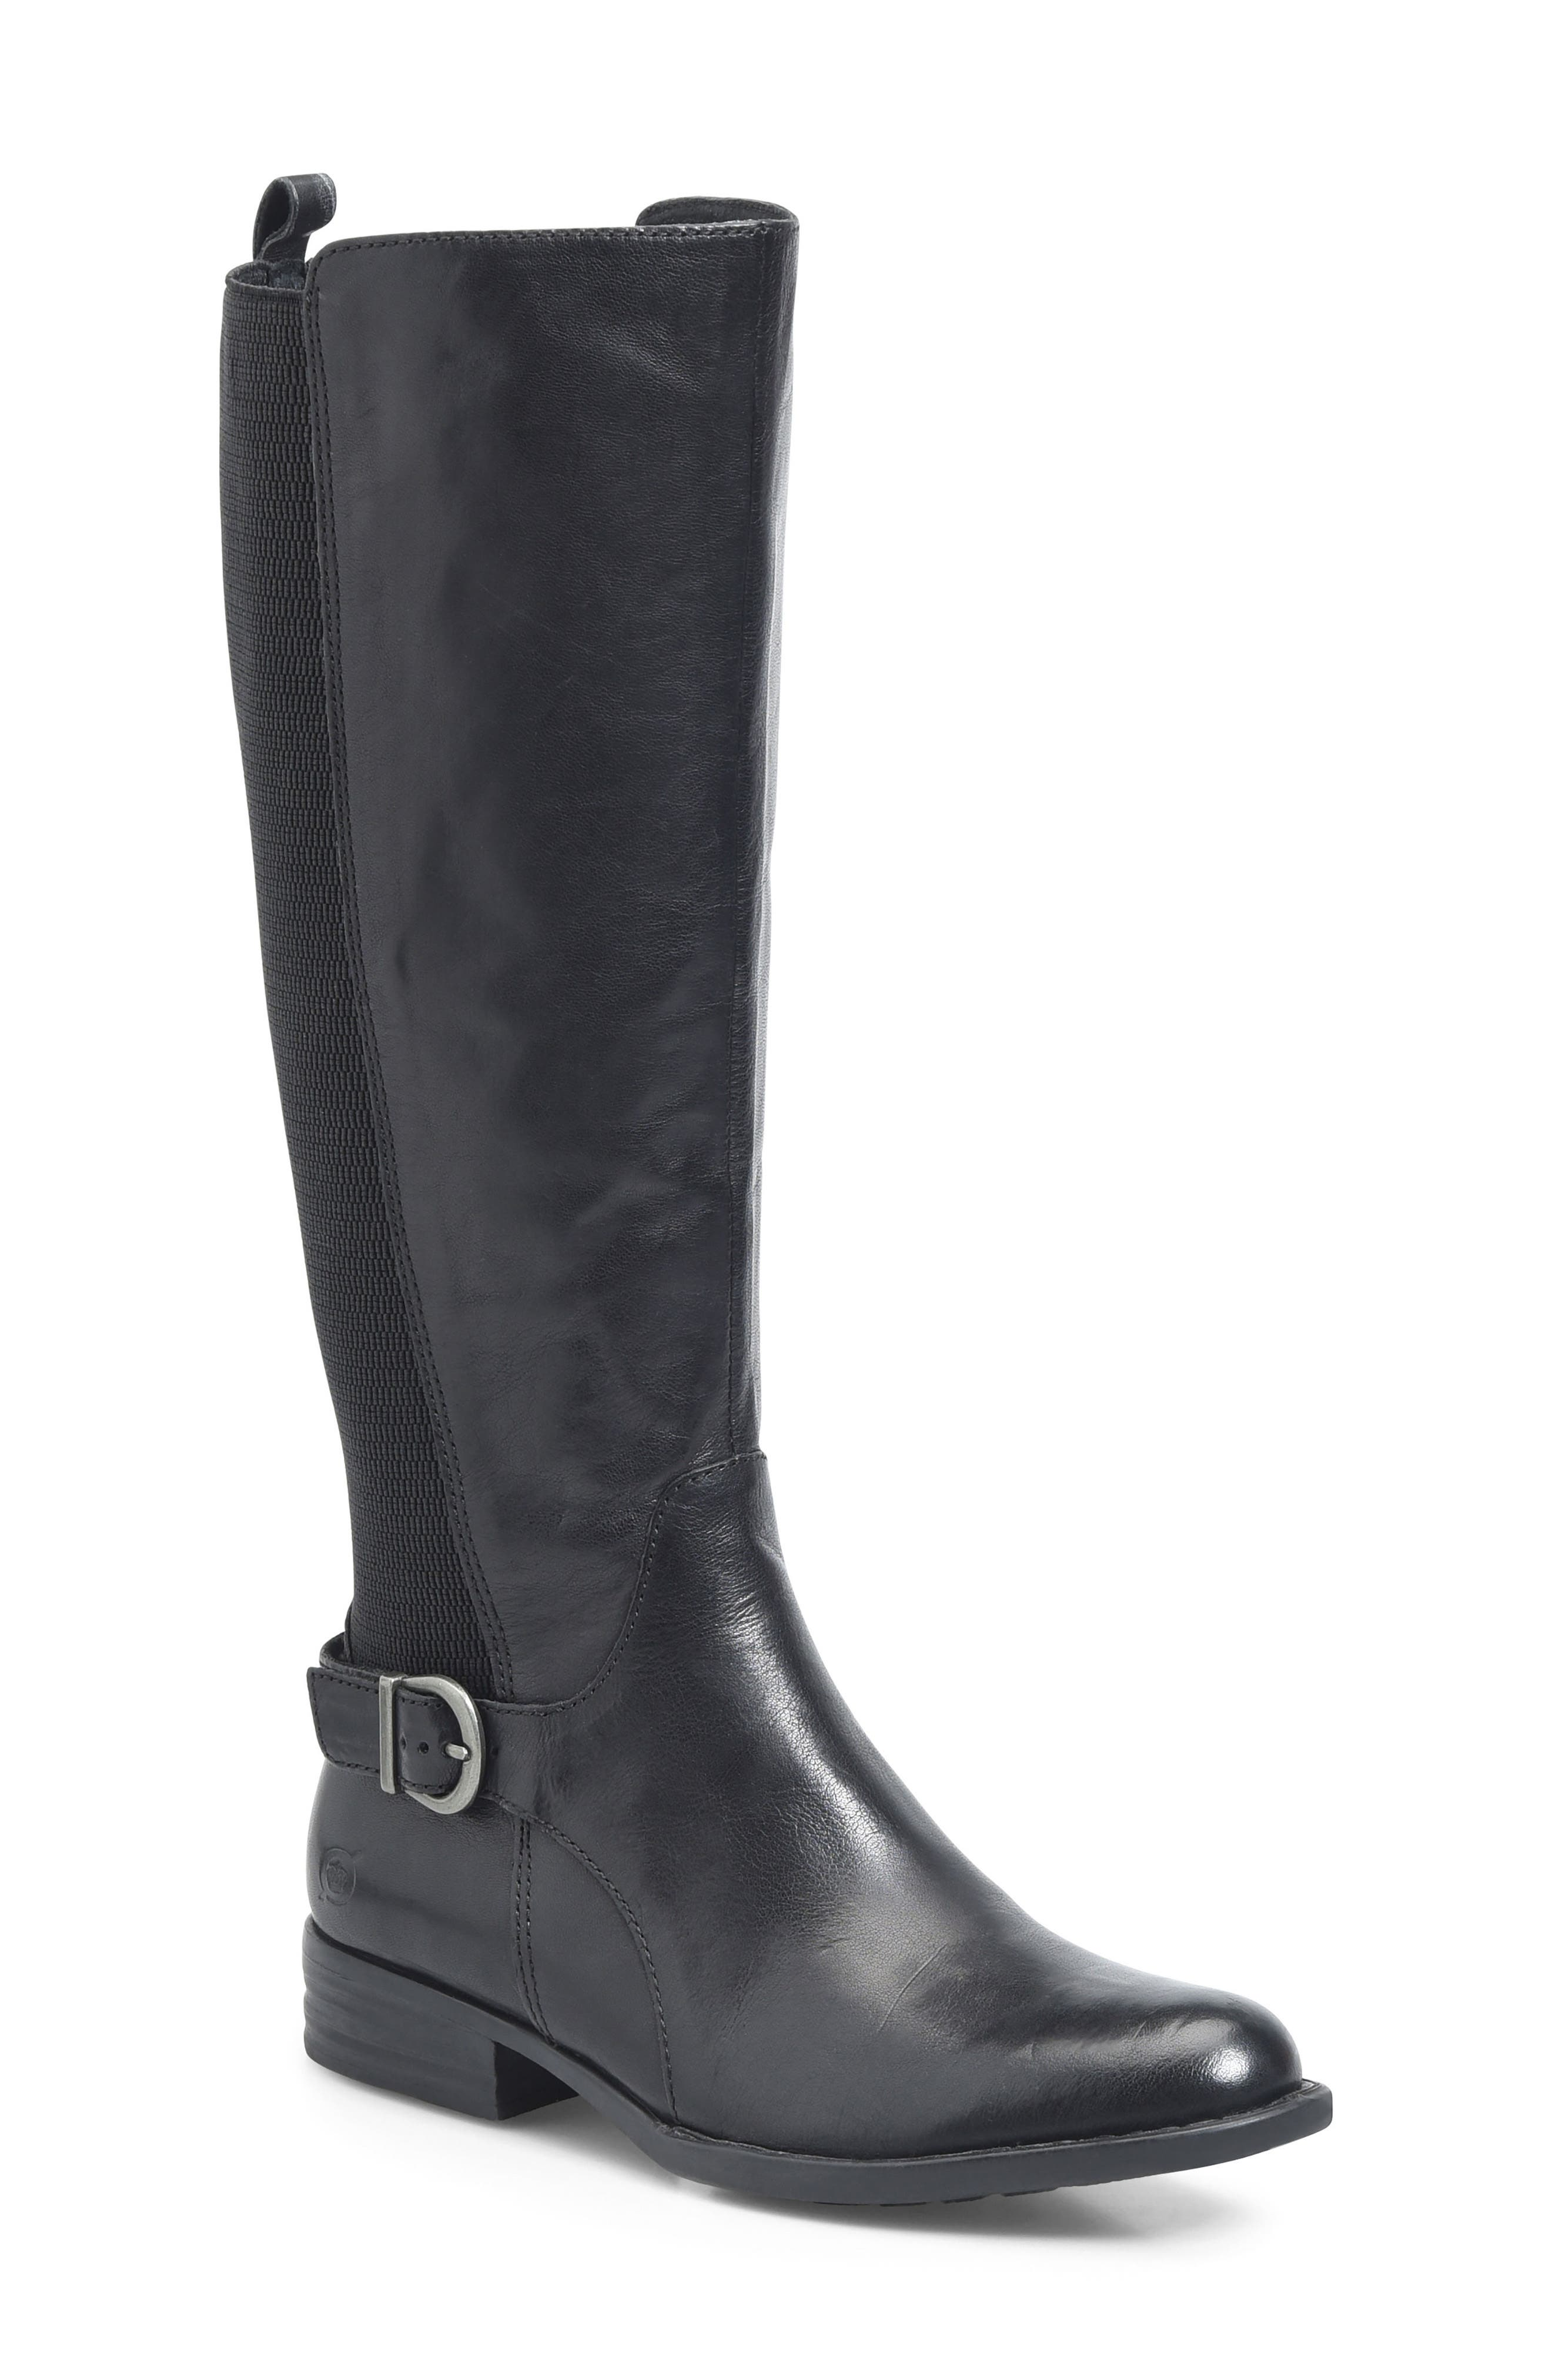 Campbell Knee High Elastic Back Boot,                             Main thumbnail 1, color,                             Black Leather